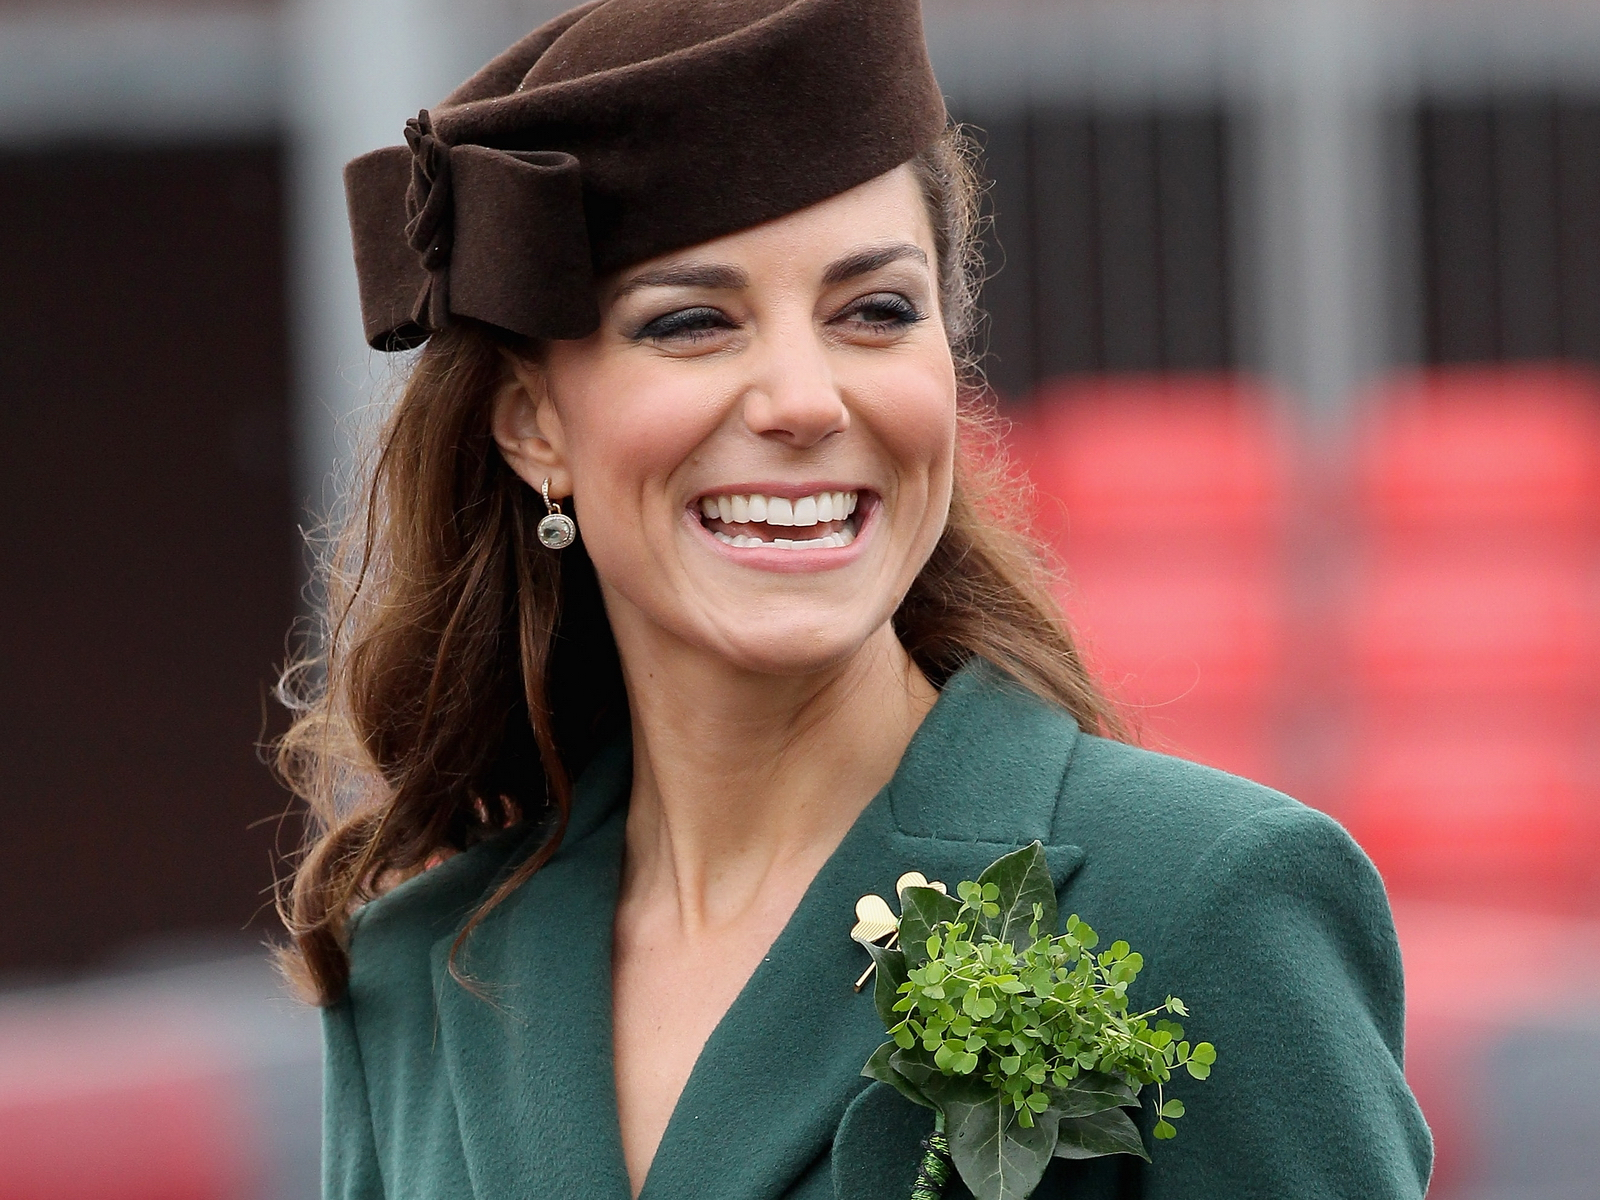 Kate Middleton Style Wallpaper